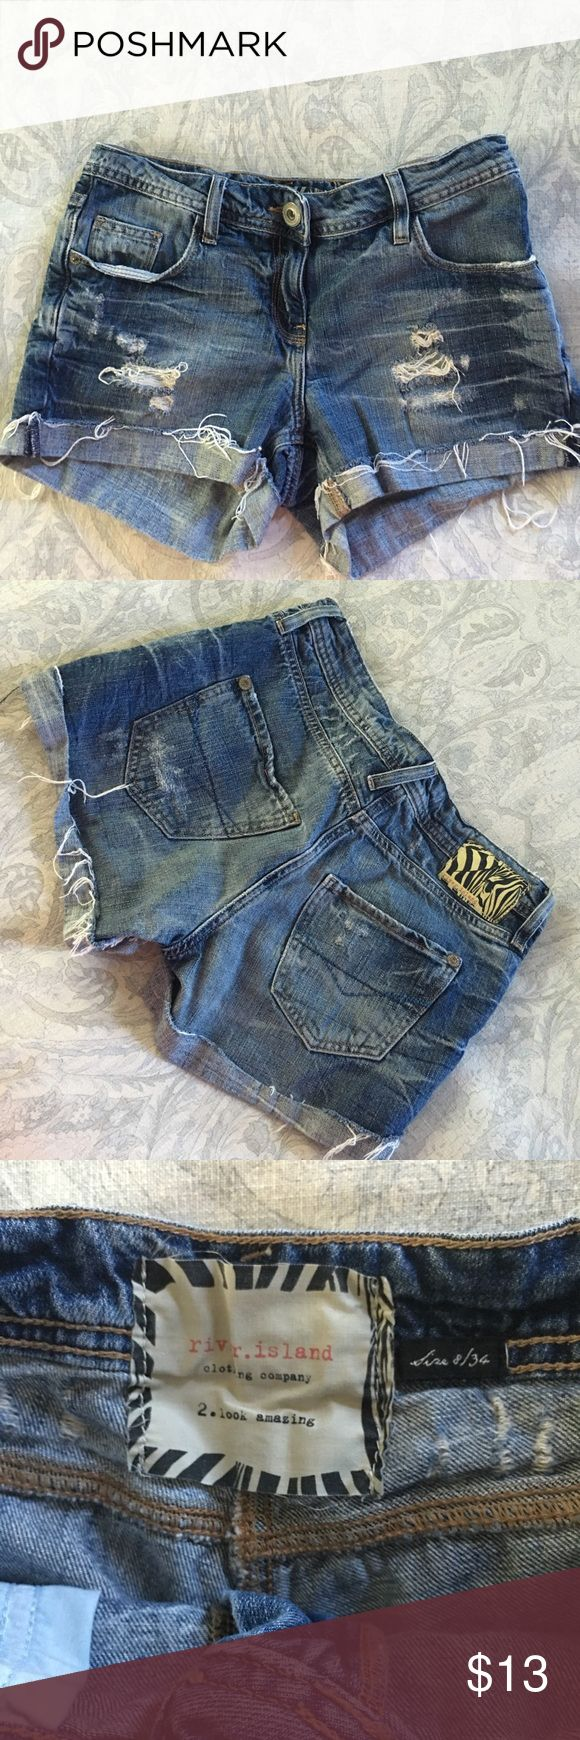 River Island Dark Denim Distressed Cut-Offs River Island dark denim distressed cut-off shorts. Tag says Euro size 34, UK size 8 - but I marked a size 2 because they'd fit a size 2 best (I'm typically a size 0 or 2). Shorts were purchased in Ireland, they're in gorgeous like-new condition. River Island Shorts Jean Shorts